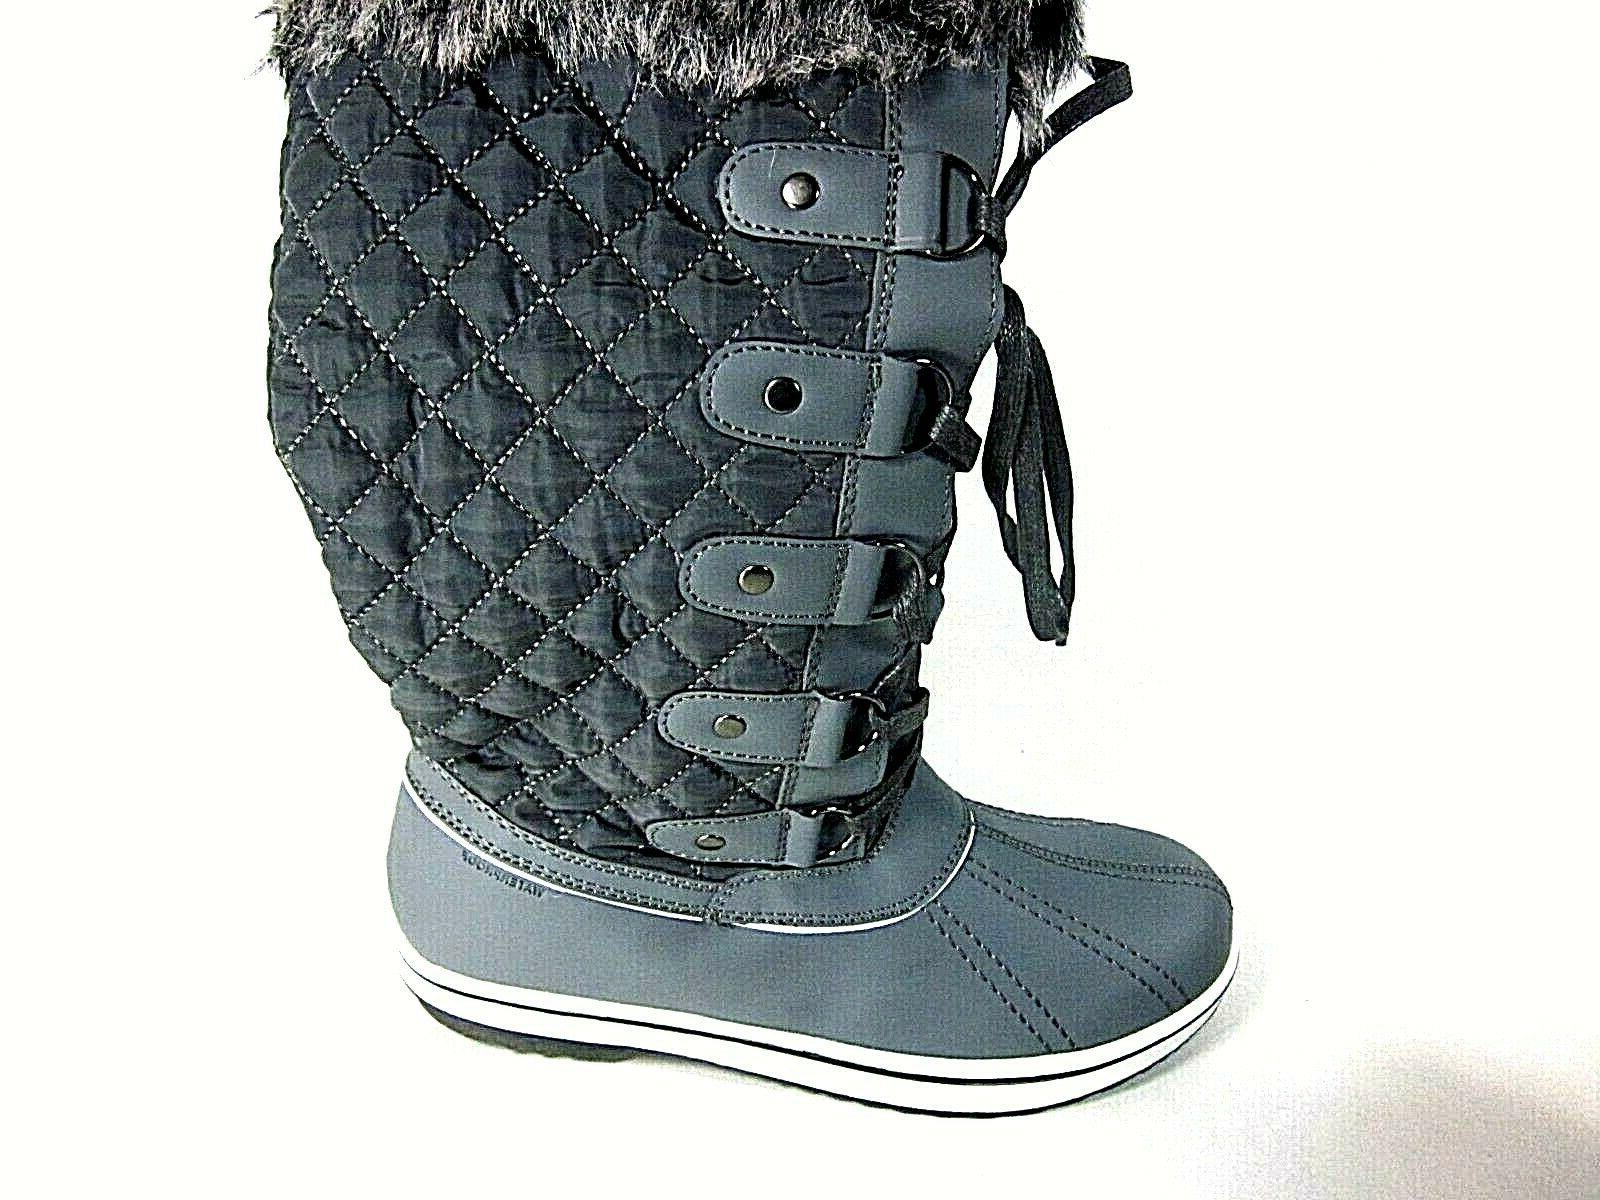 ALEADER Lace Up Cold Weather Winter Snow Boots, Dark Grey US